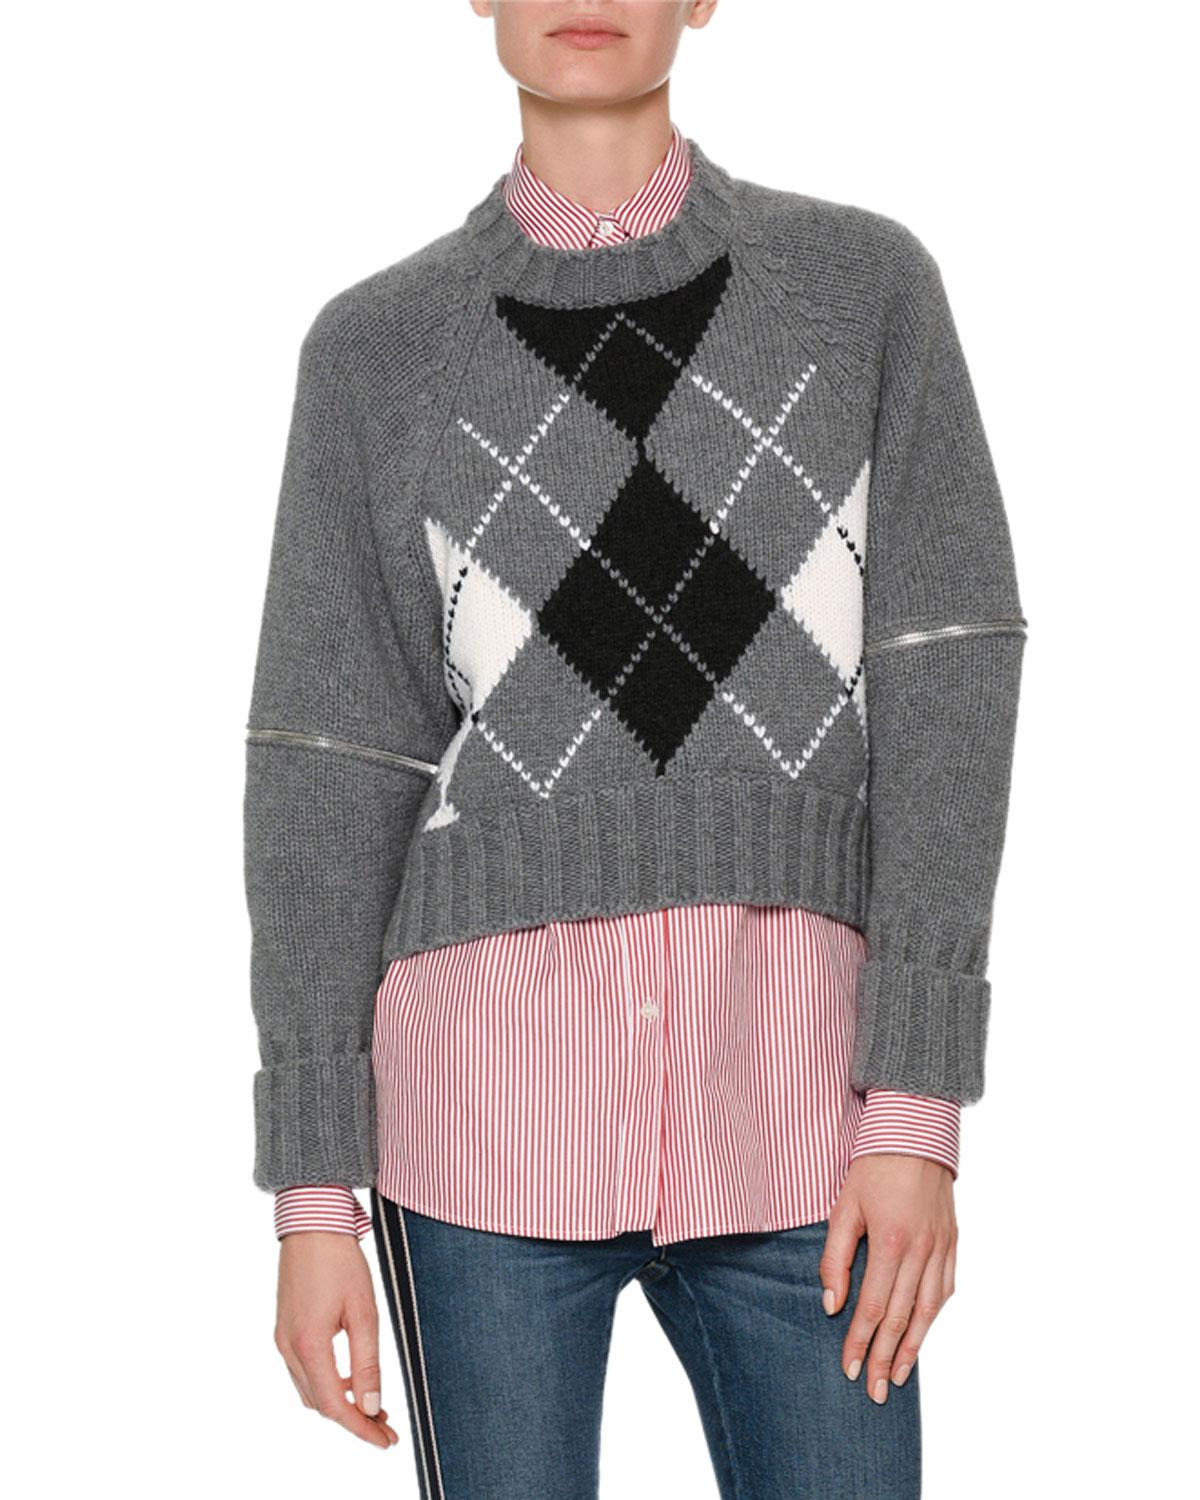 zip sleeve argyle sweater - Grey Alexander McQueen Latest Collections Cheap Sale Shop For Clearance Cheap Price Wholesale Quality YAzYPI